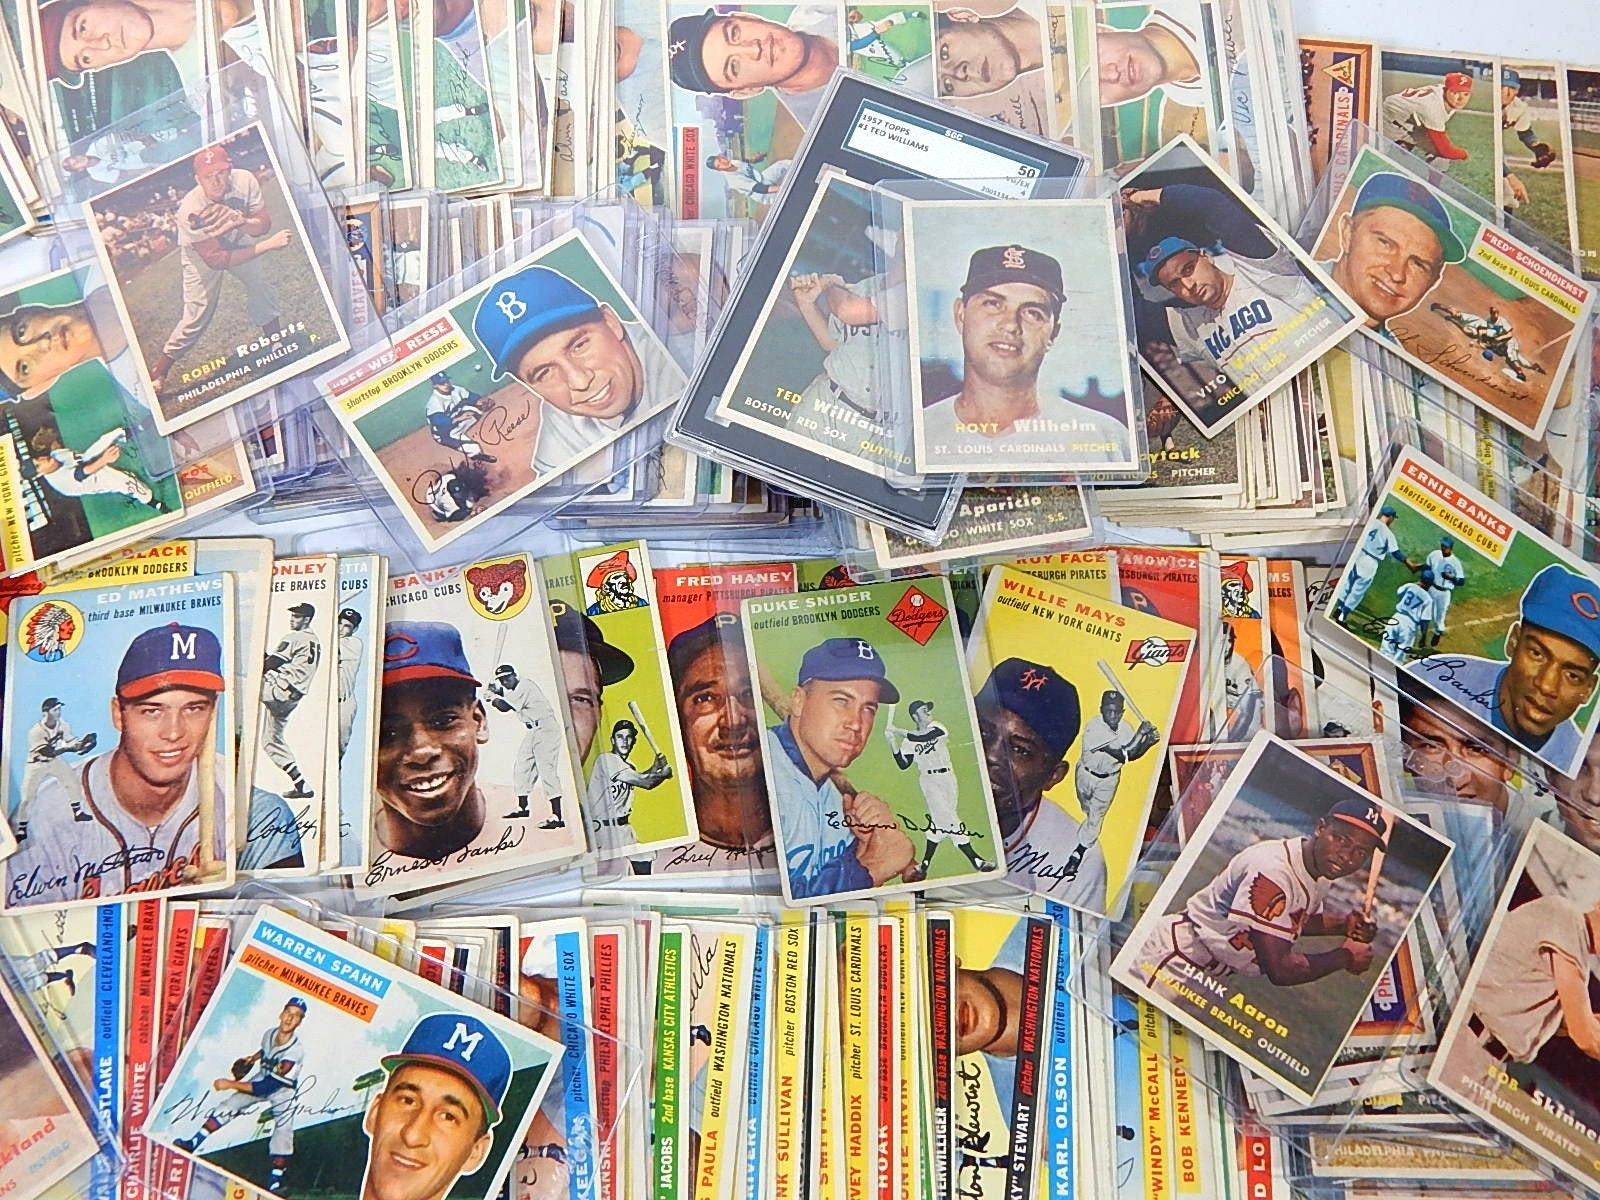 Large Topps Vintage Baseball Card Lot from 1954 to 1957 - Over 270 Cards